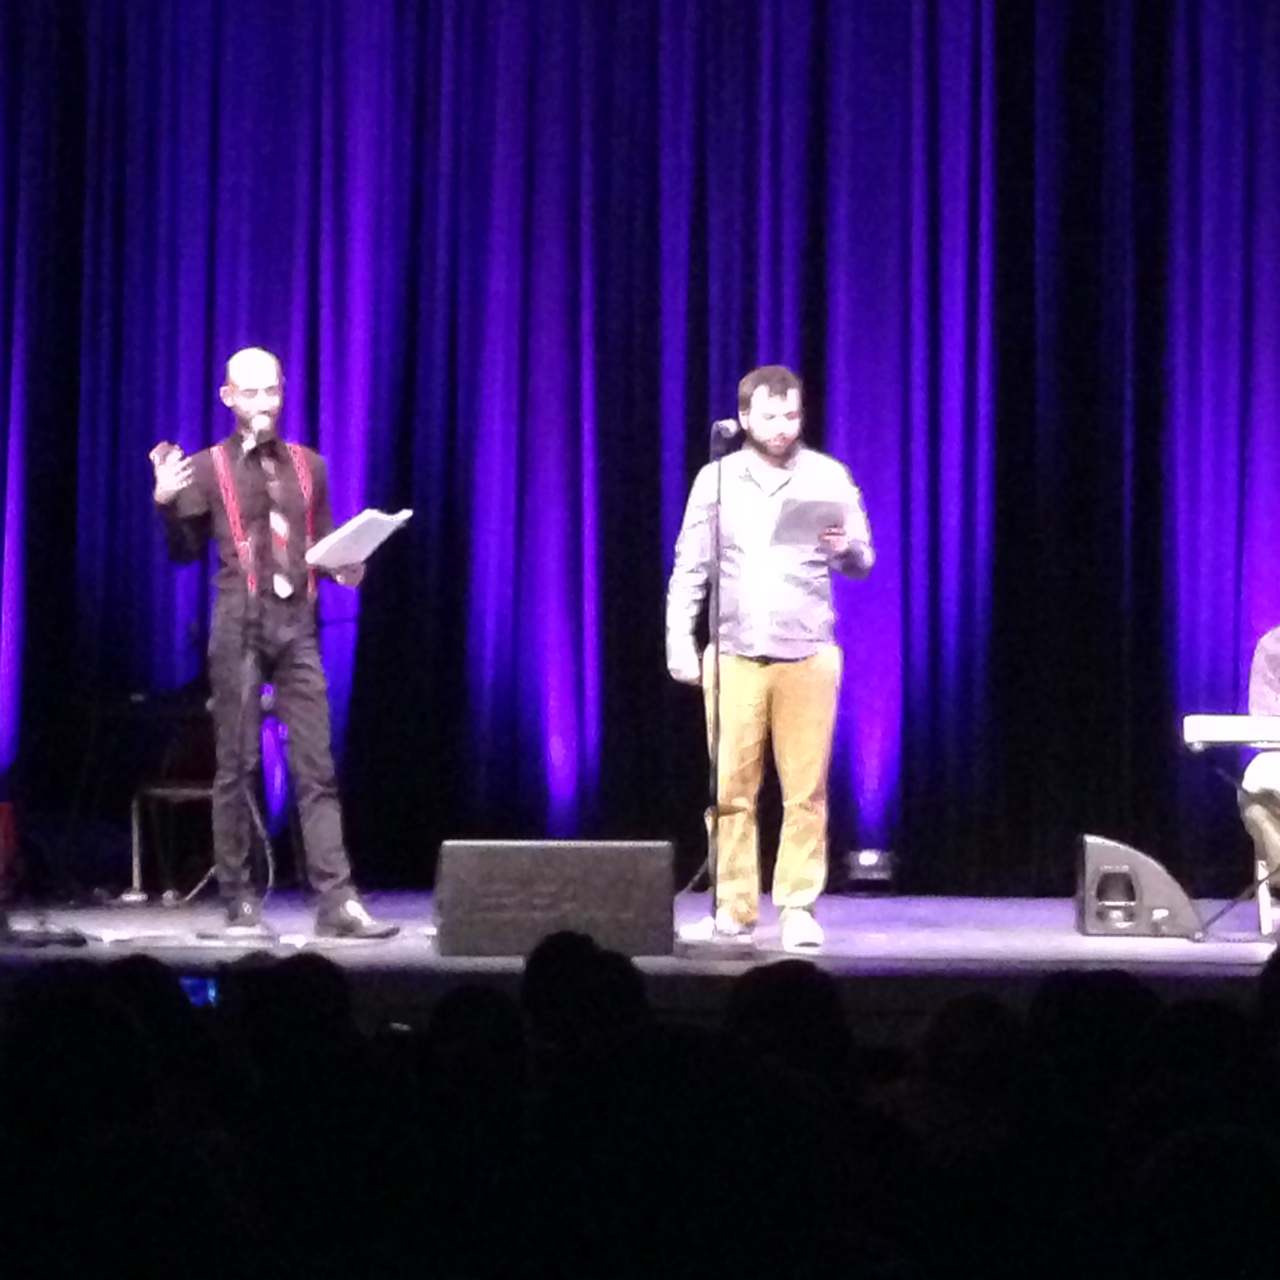 Cecil Baldwin and Joseph Fink on stage at the Bing Theater